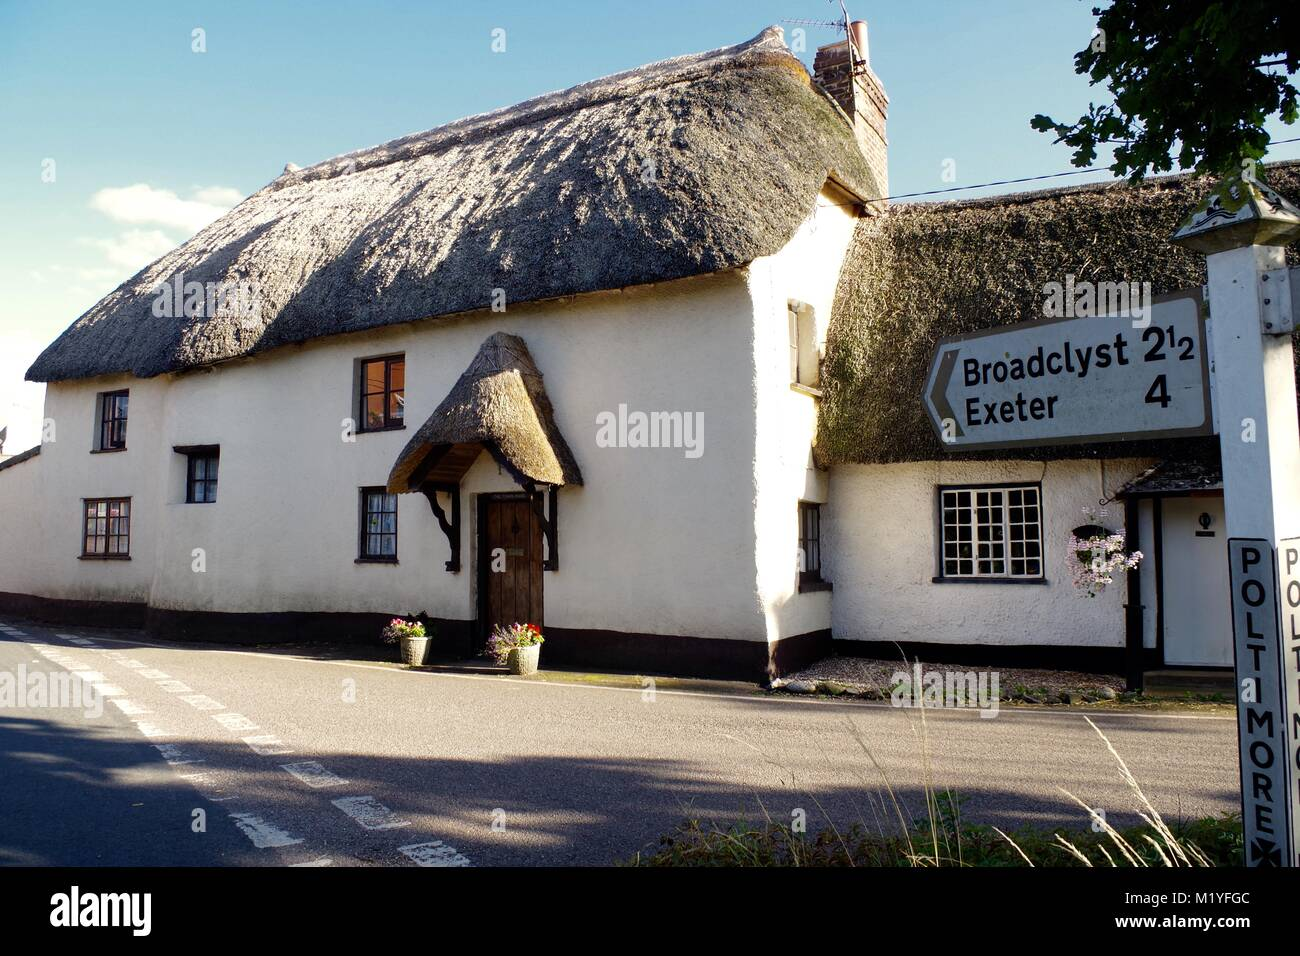 Thatched Cottage and Old Road Signpost. Poltimore Village, Exeter, Devon, UK. August, 2016. - Stock Image